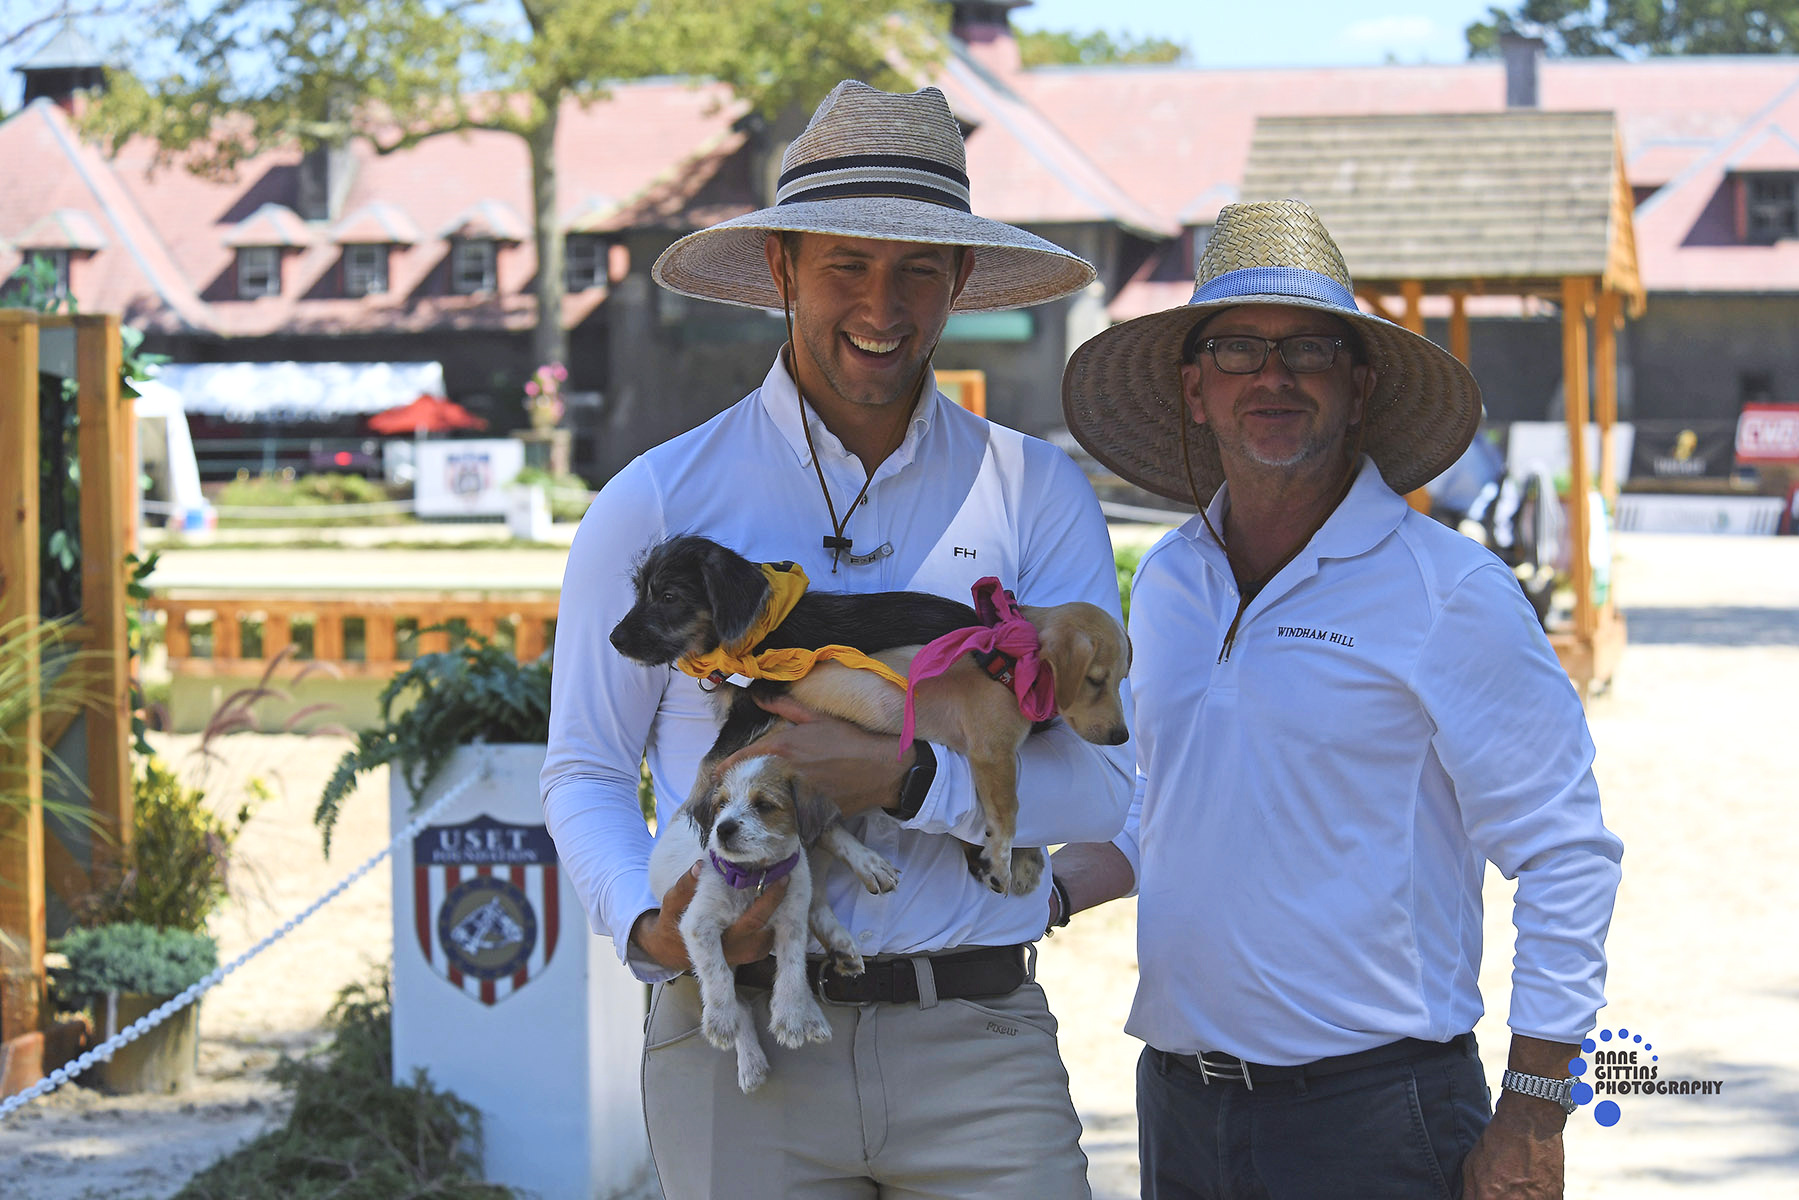 Windham Hill's Michael Meyers and Michael Dowling made fast friends with puppies available for adoption through Punta Santiago Dogs. Photo by Anne Gittins Photography